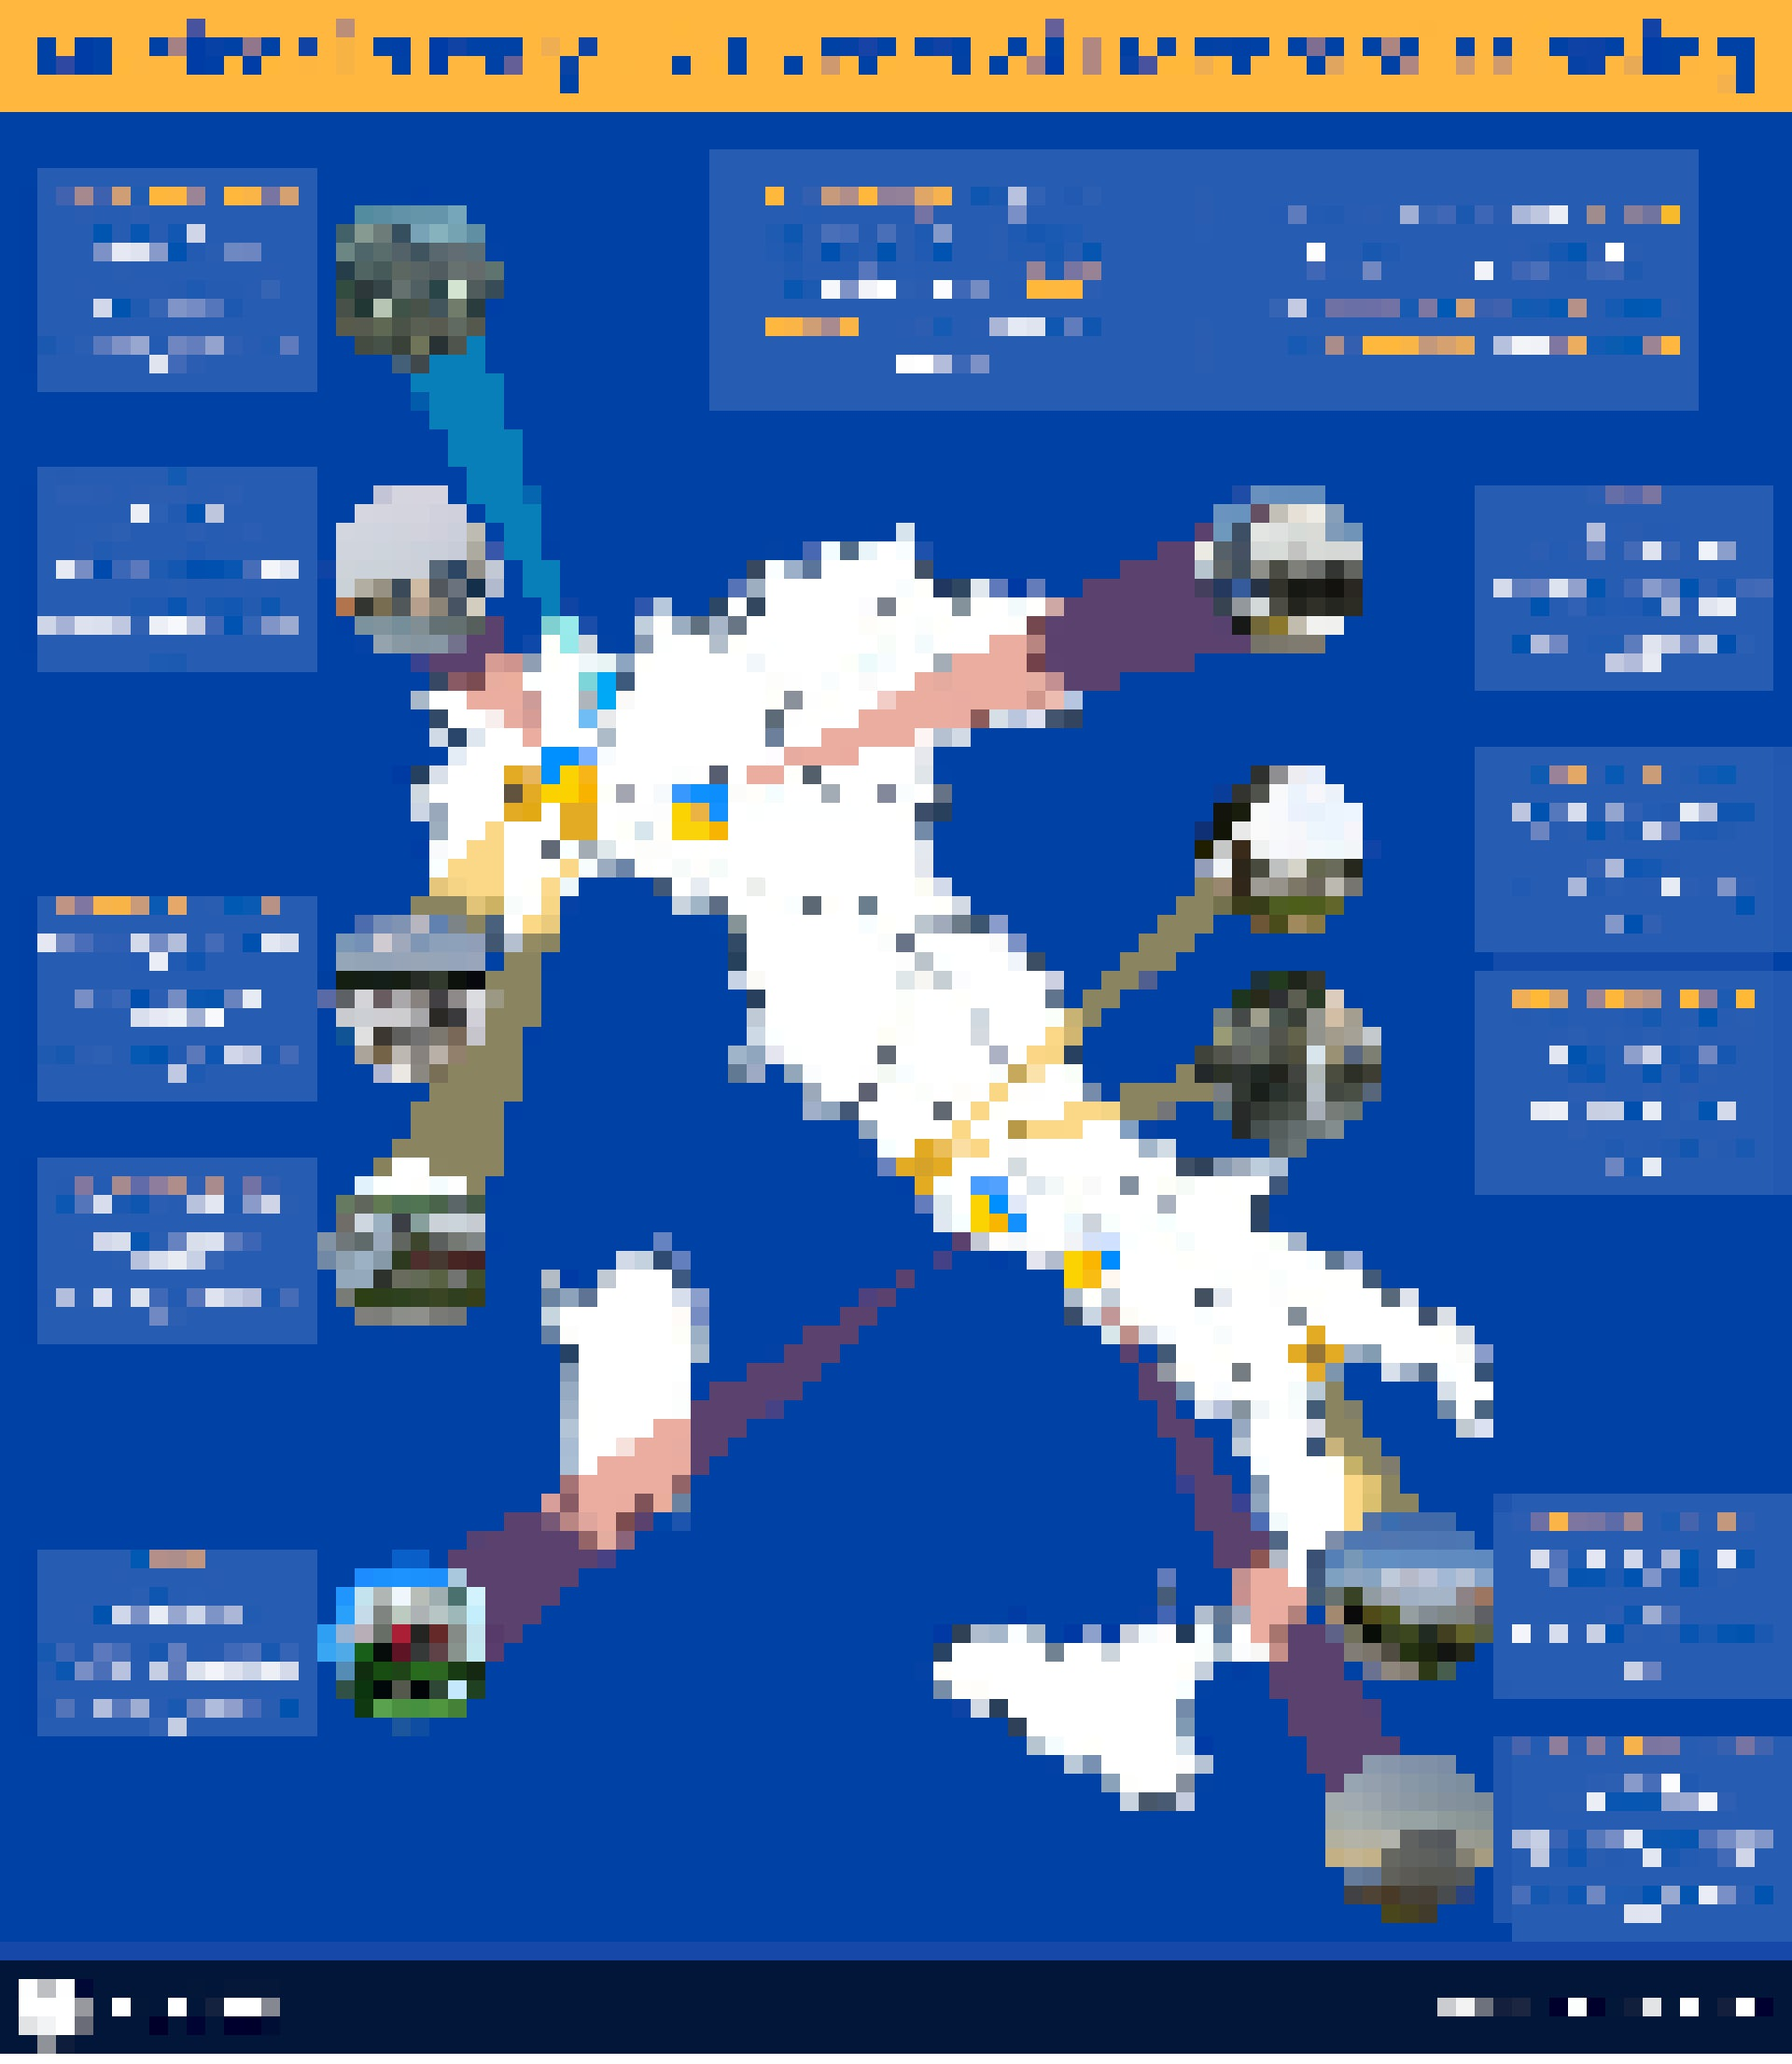 Infographic: As Decommissioning Progresses, Italy Awaits Repository Decision